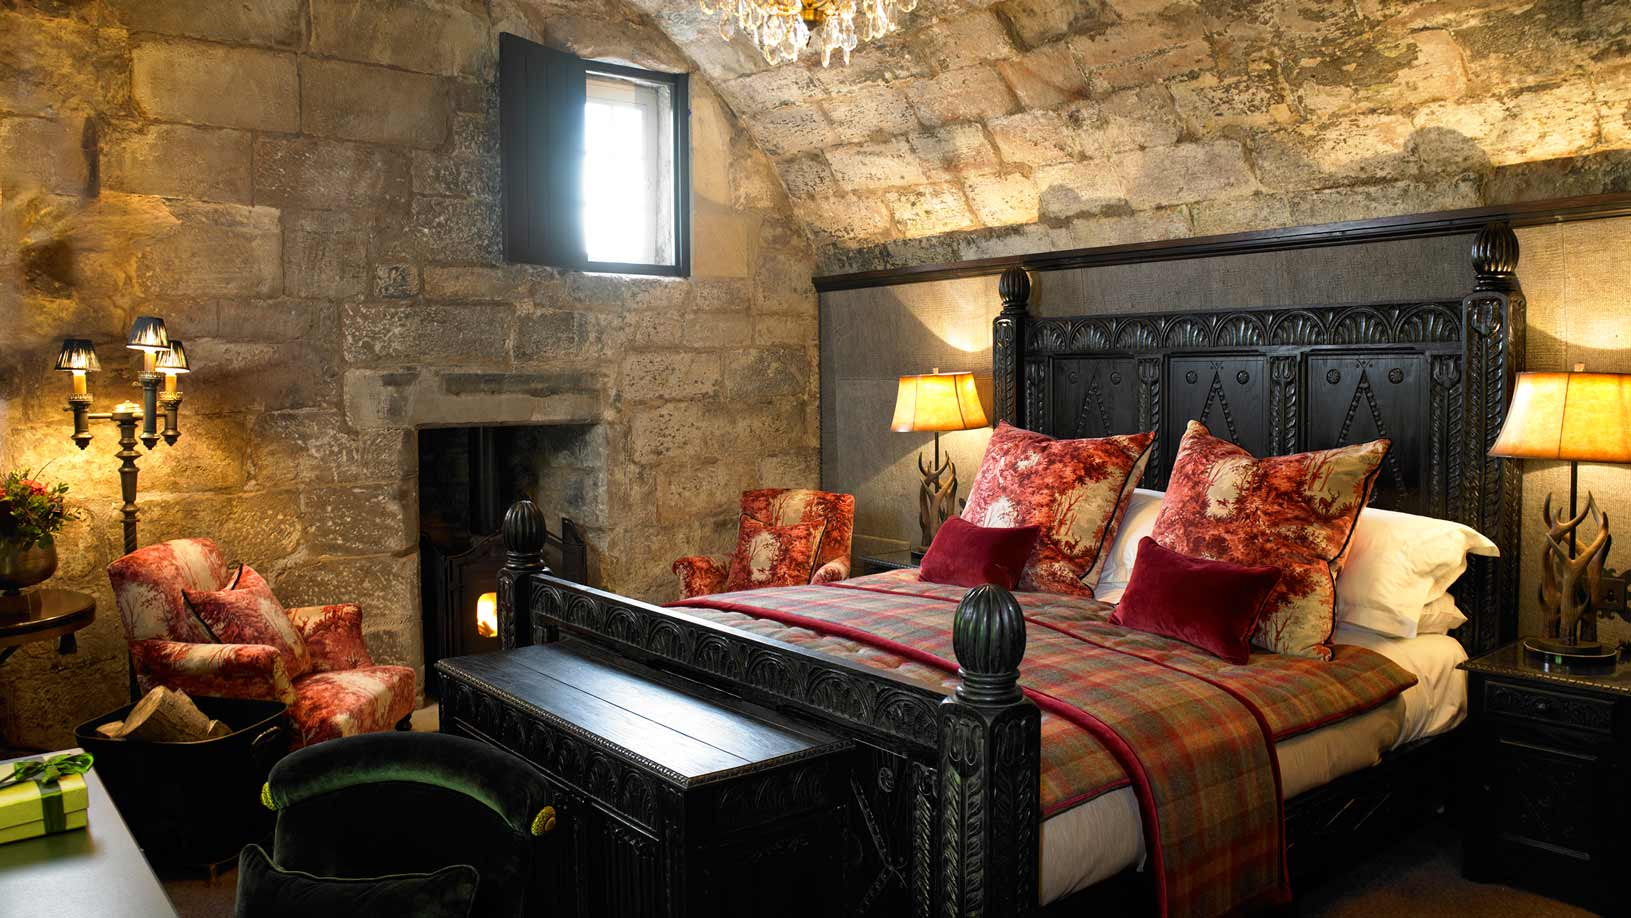 The Wizard's Tower Room at Borthwick Castle